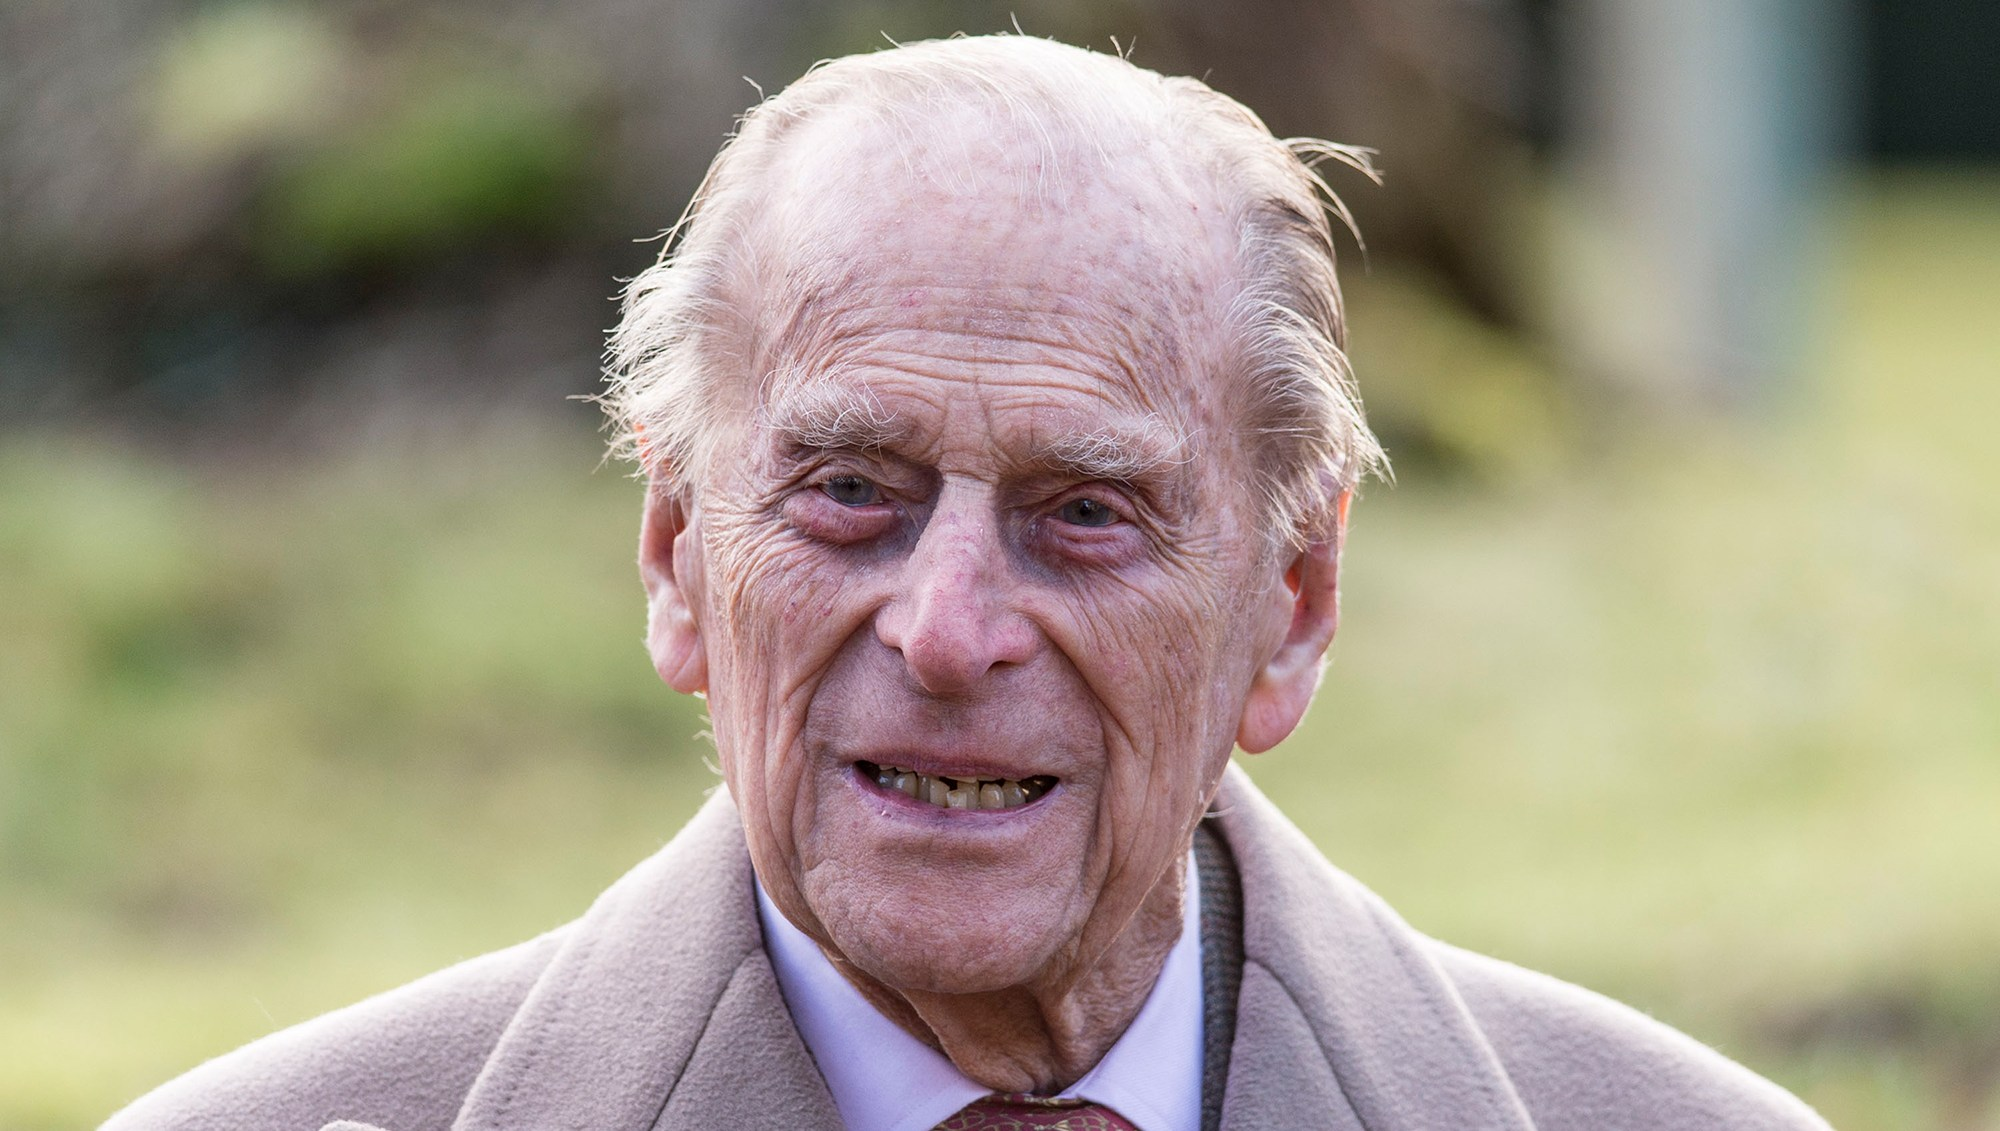 Prince Philip, 97, Involved in Car Accident Near Sandringham Estate